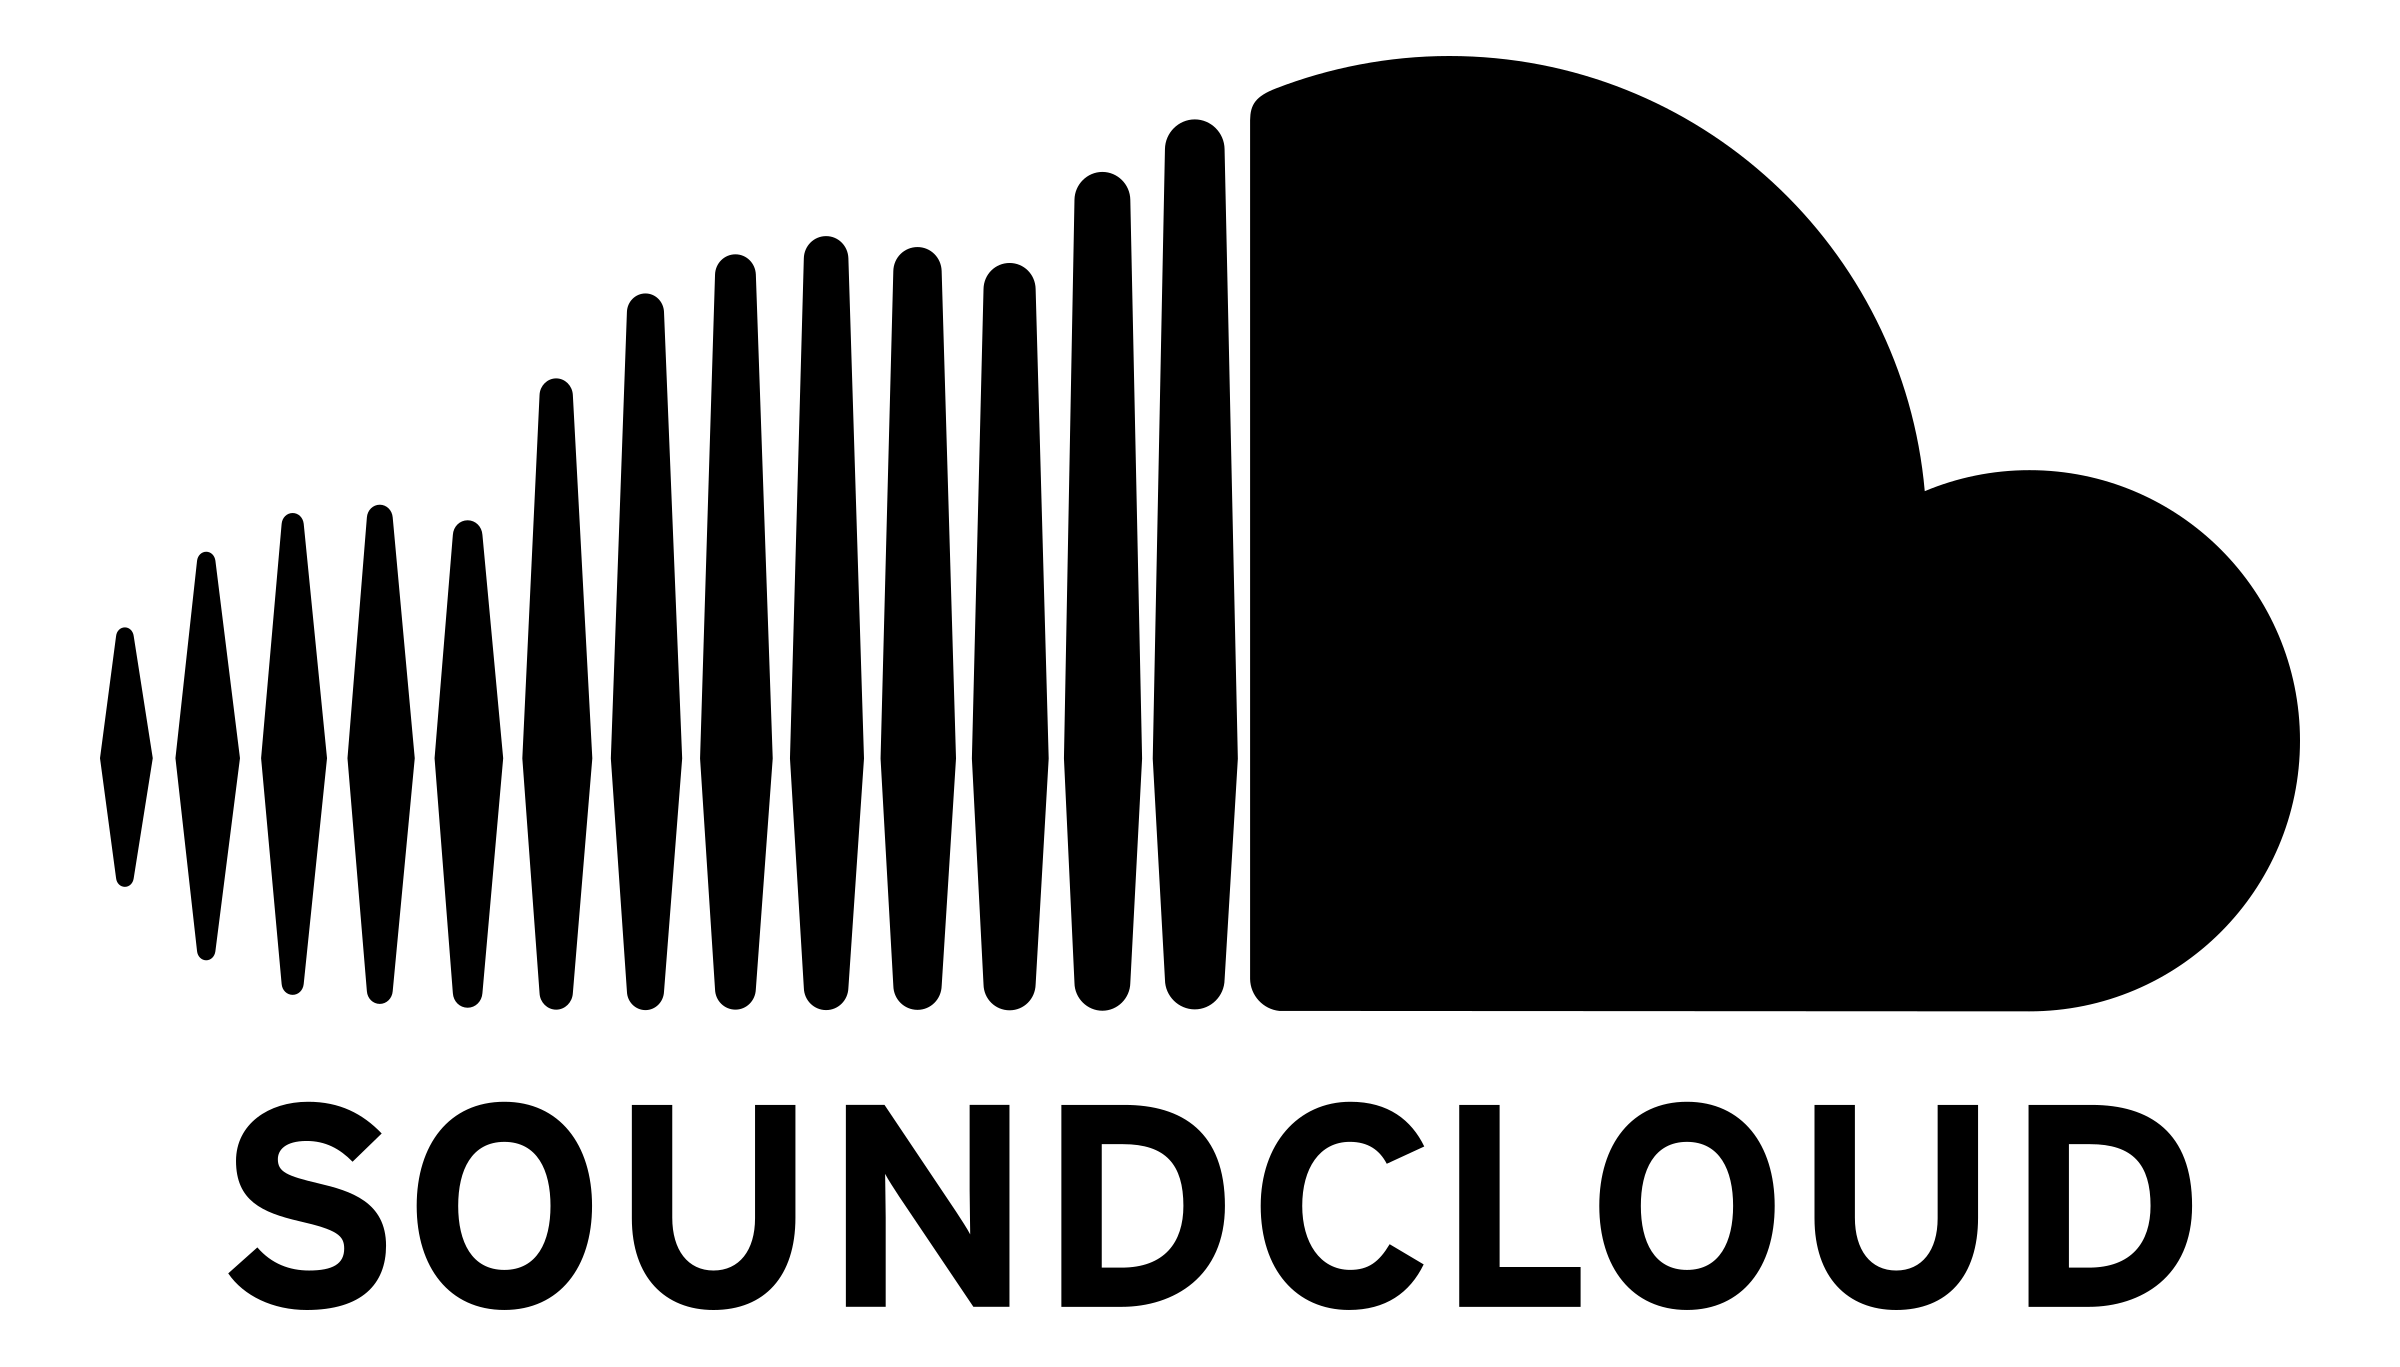 soundcloud-logo-black-transparent.png